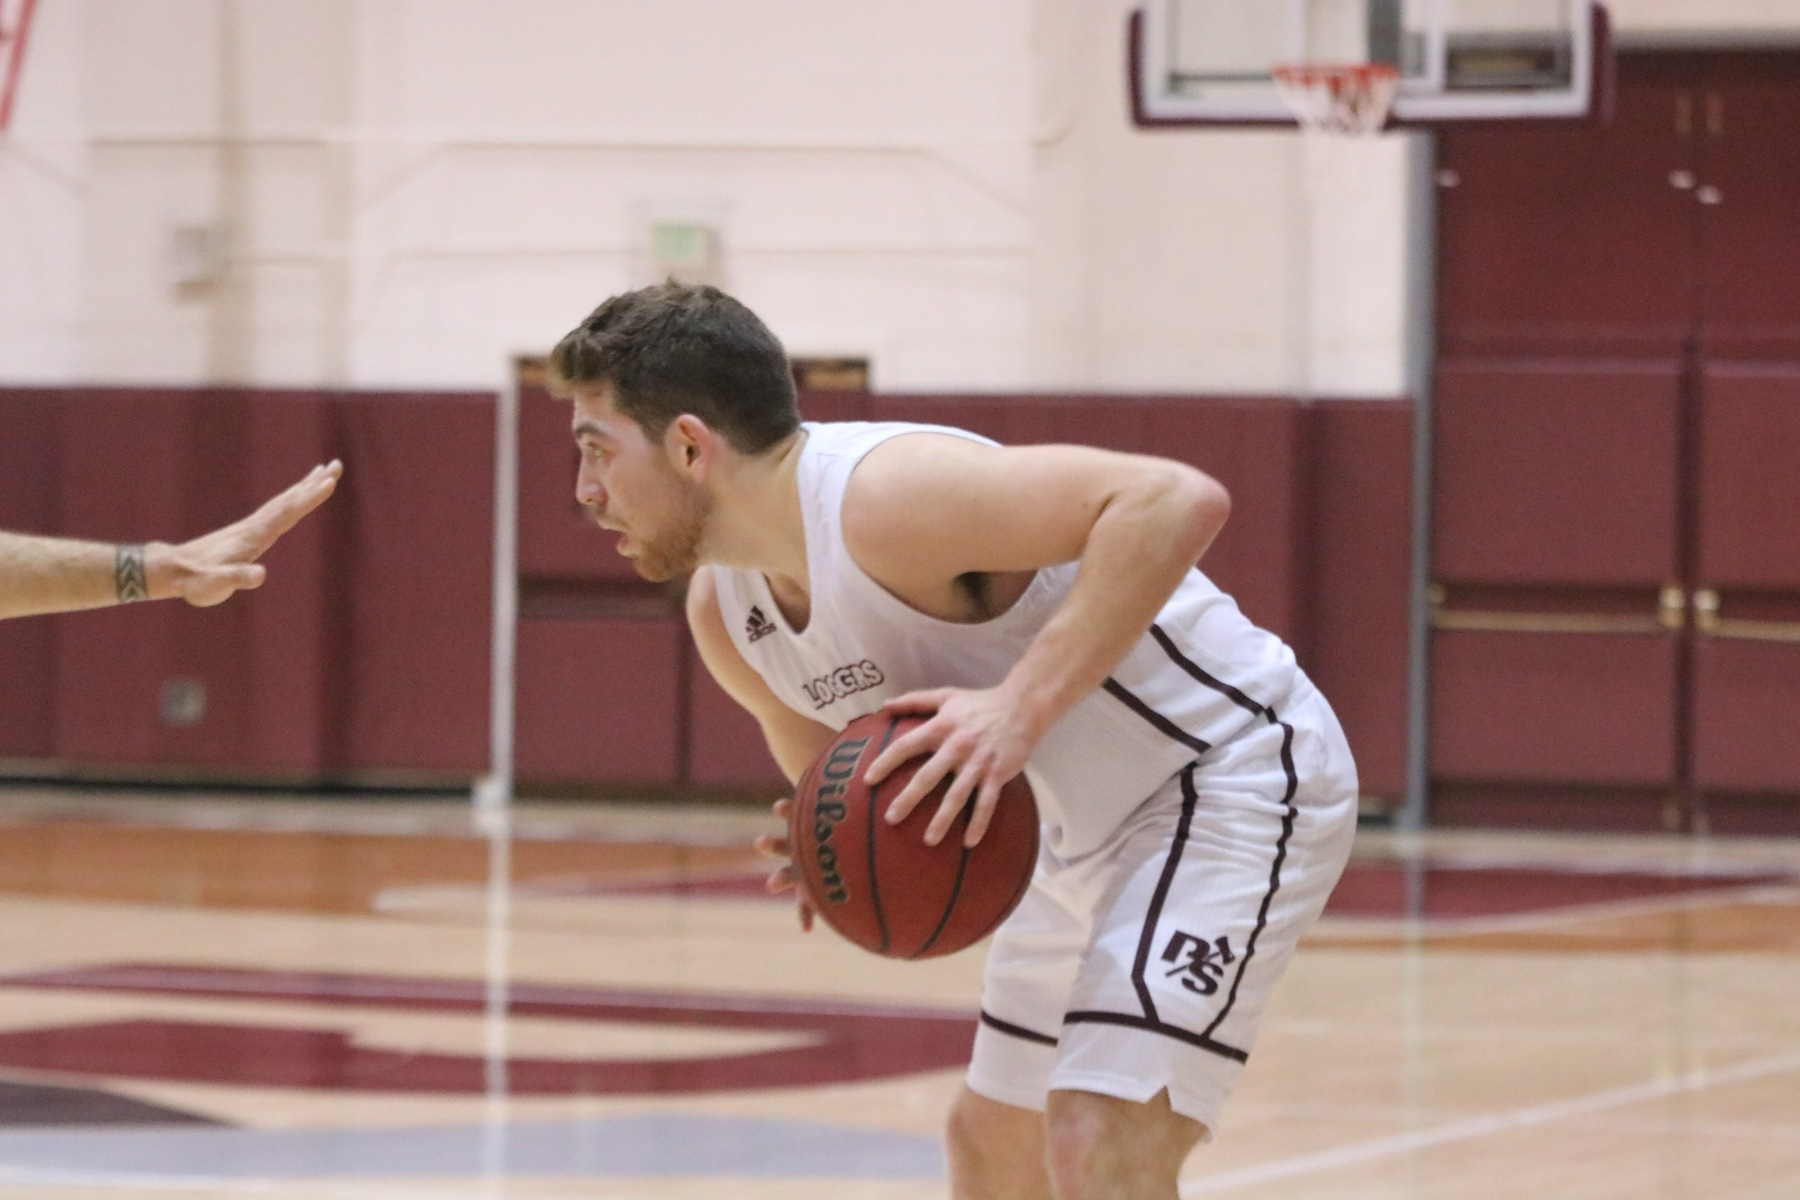 Balanced attack leads to 85-75 win over Willamette